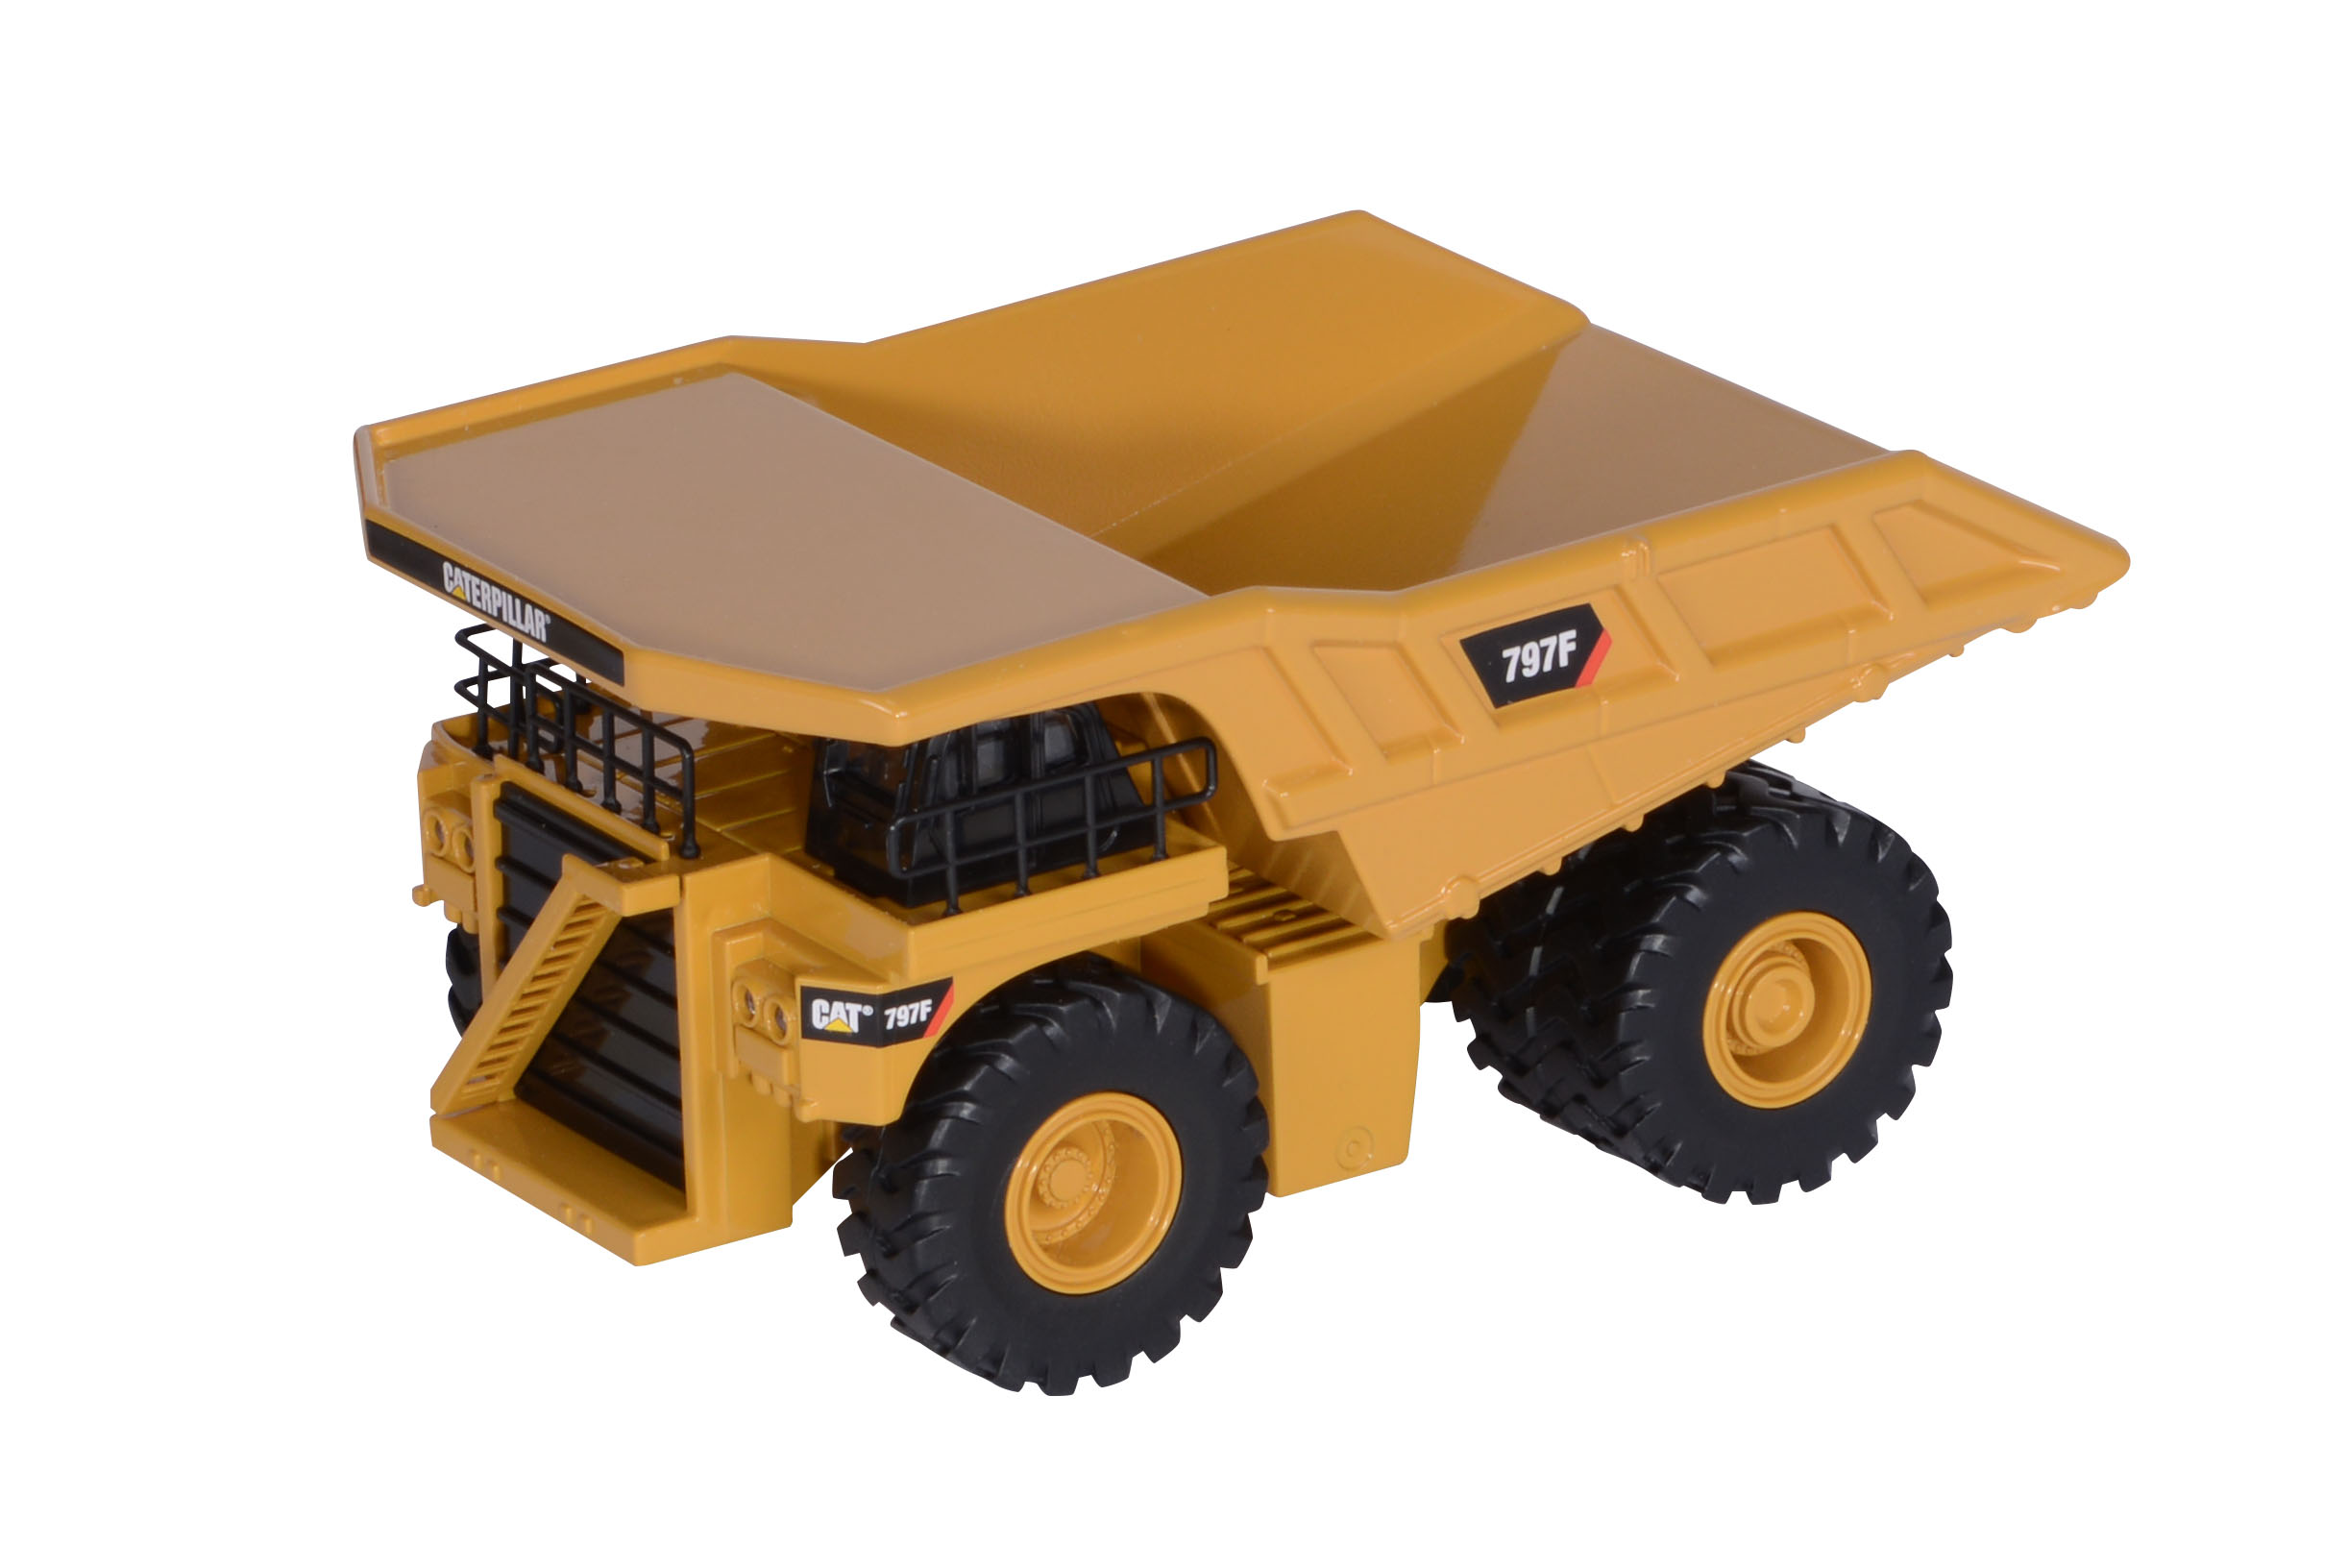 Caterpillar Metal Machine 797F Dump Truck by Toy State International Limited